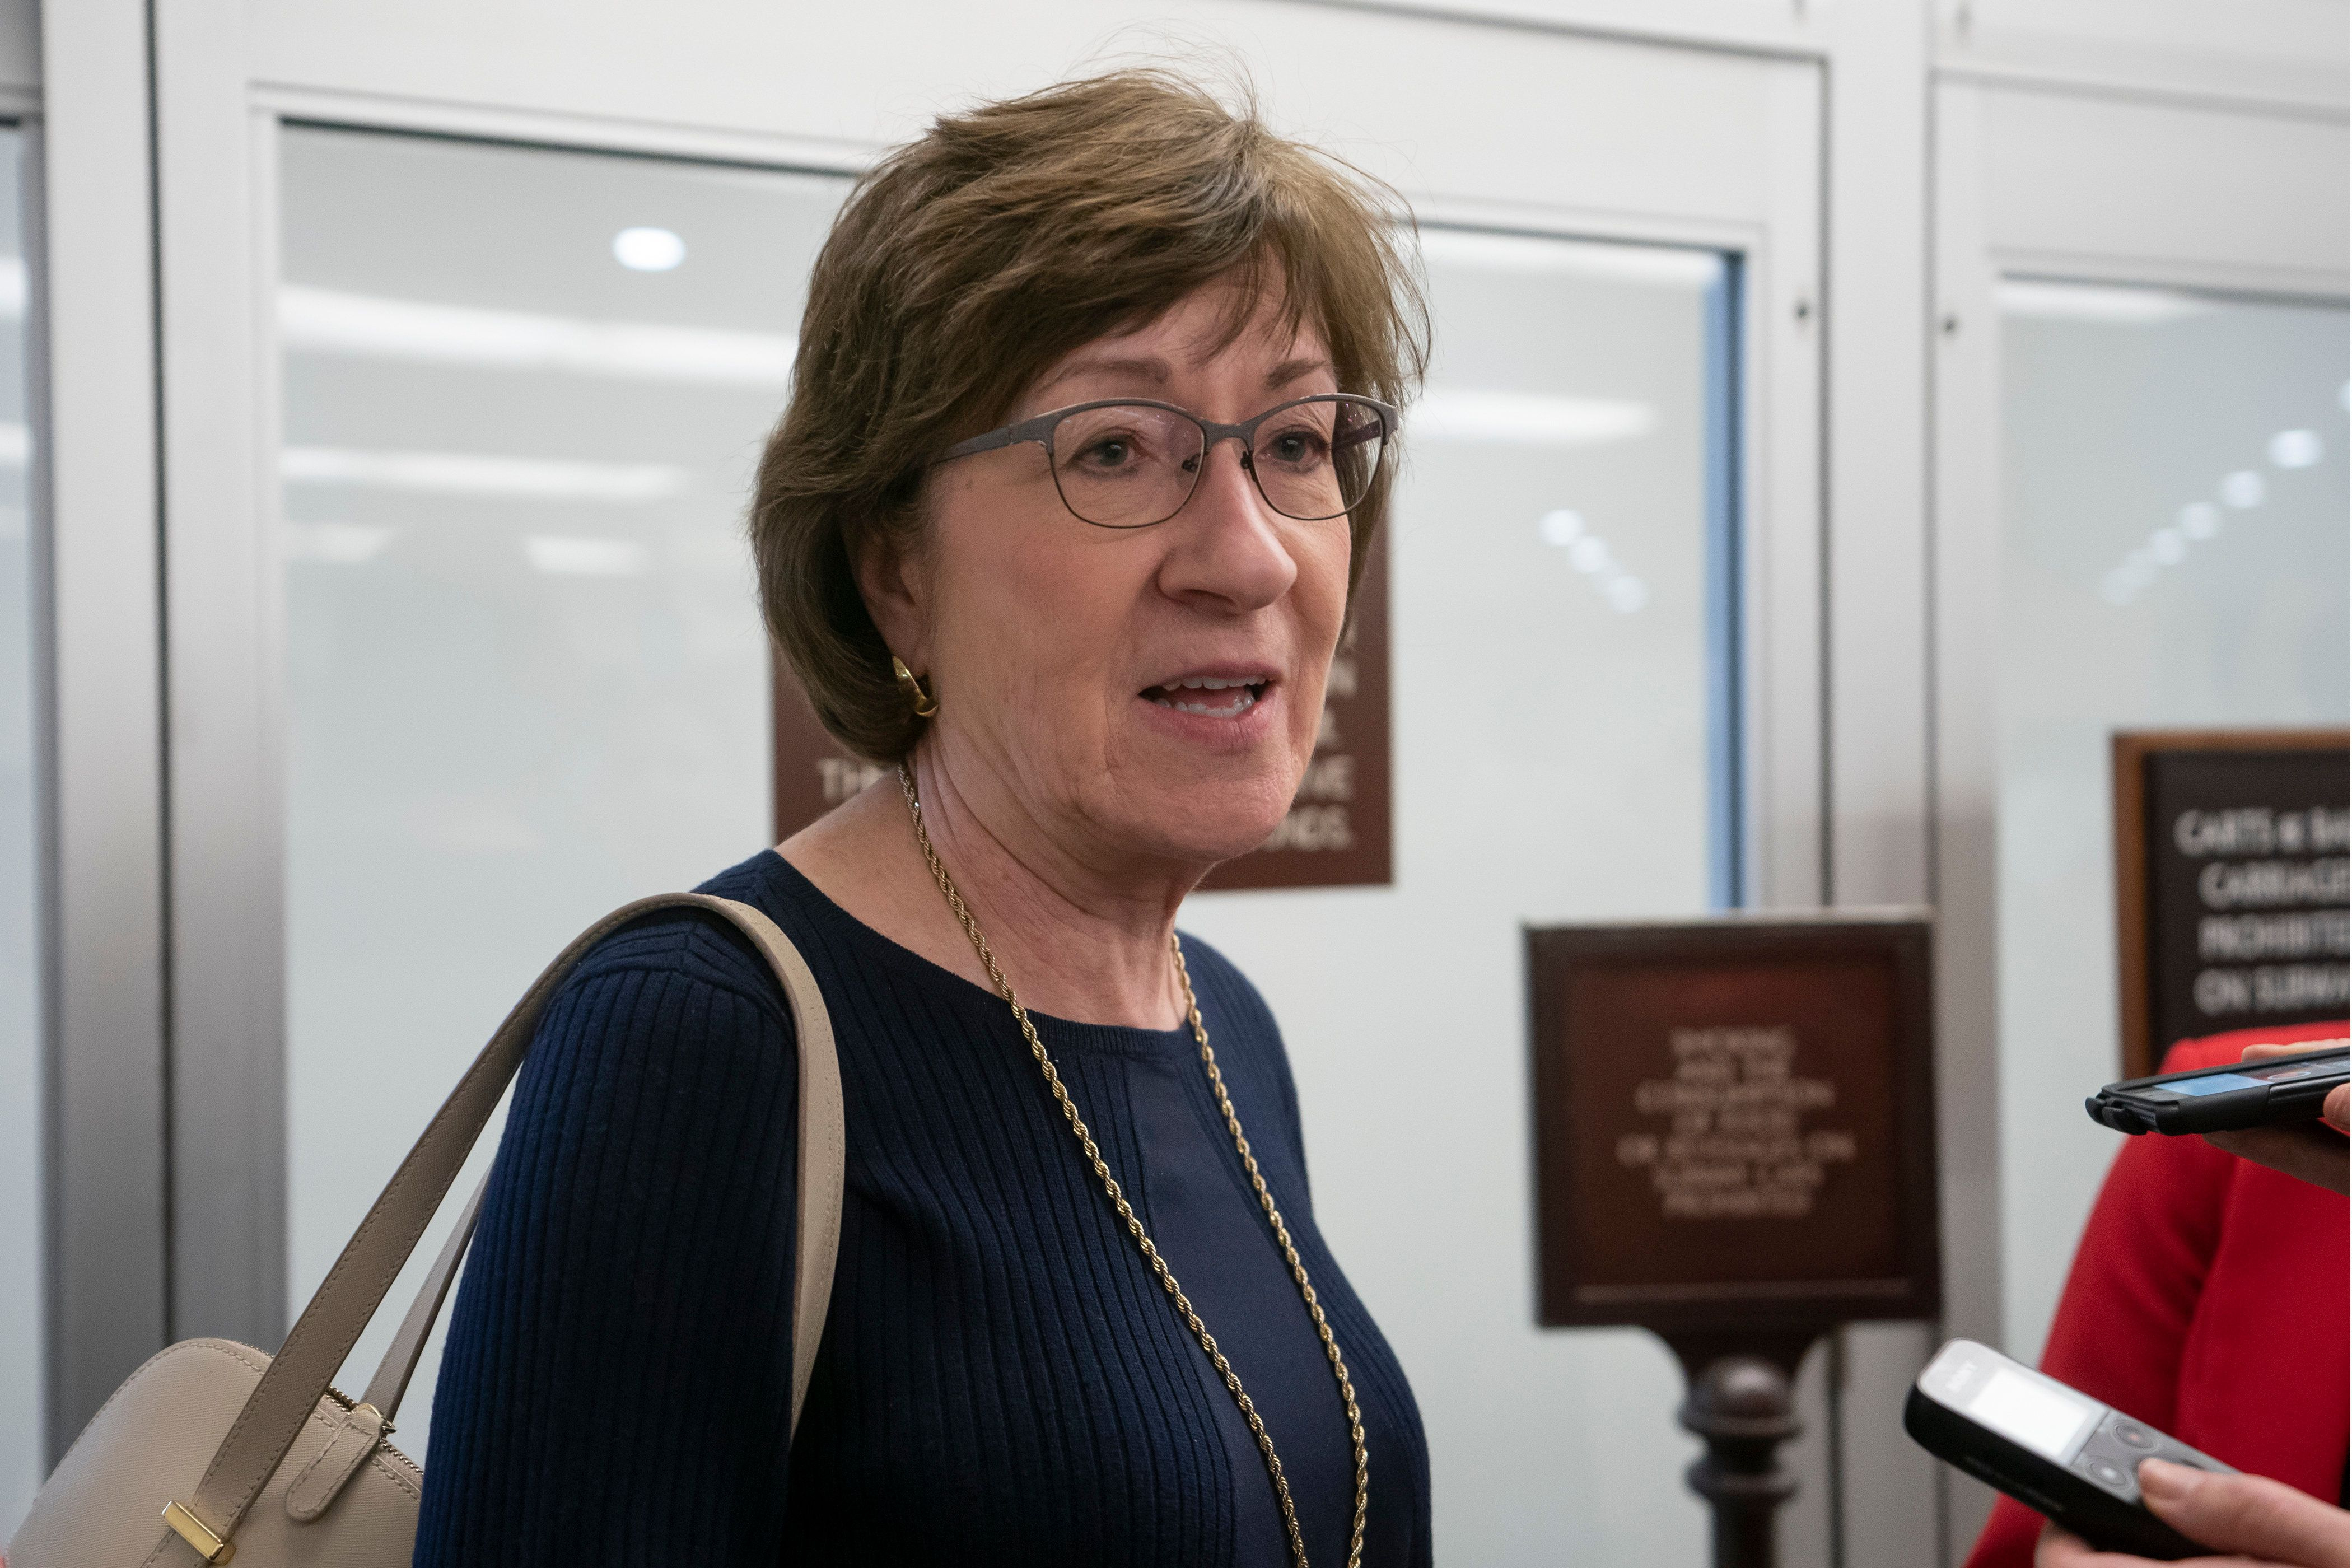 Sen. Susan Collins, R-Maine, takes questions from reporters after the confirmation vote for David Bernhardt to serve as secretary of the Interior, at the Capitol in Washington, Thursday, April 11, 2019. (AP Photo/J. Scott Applewhite)